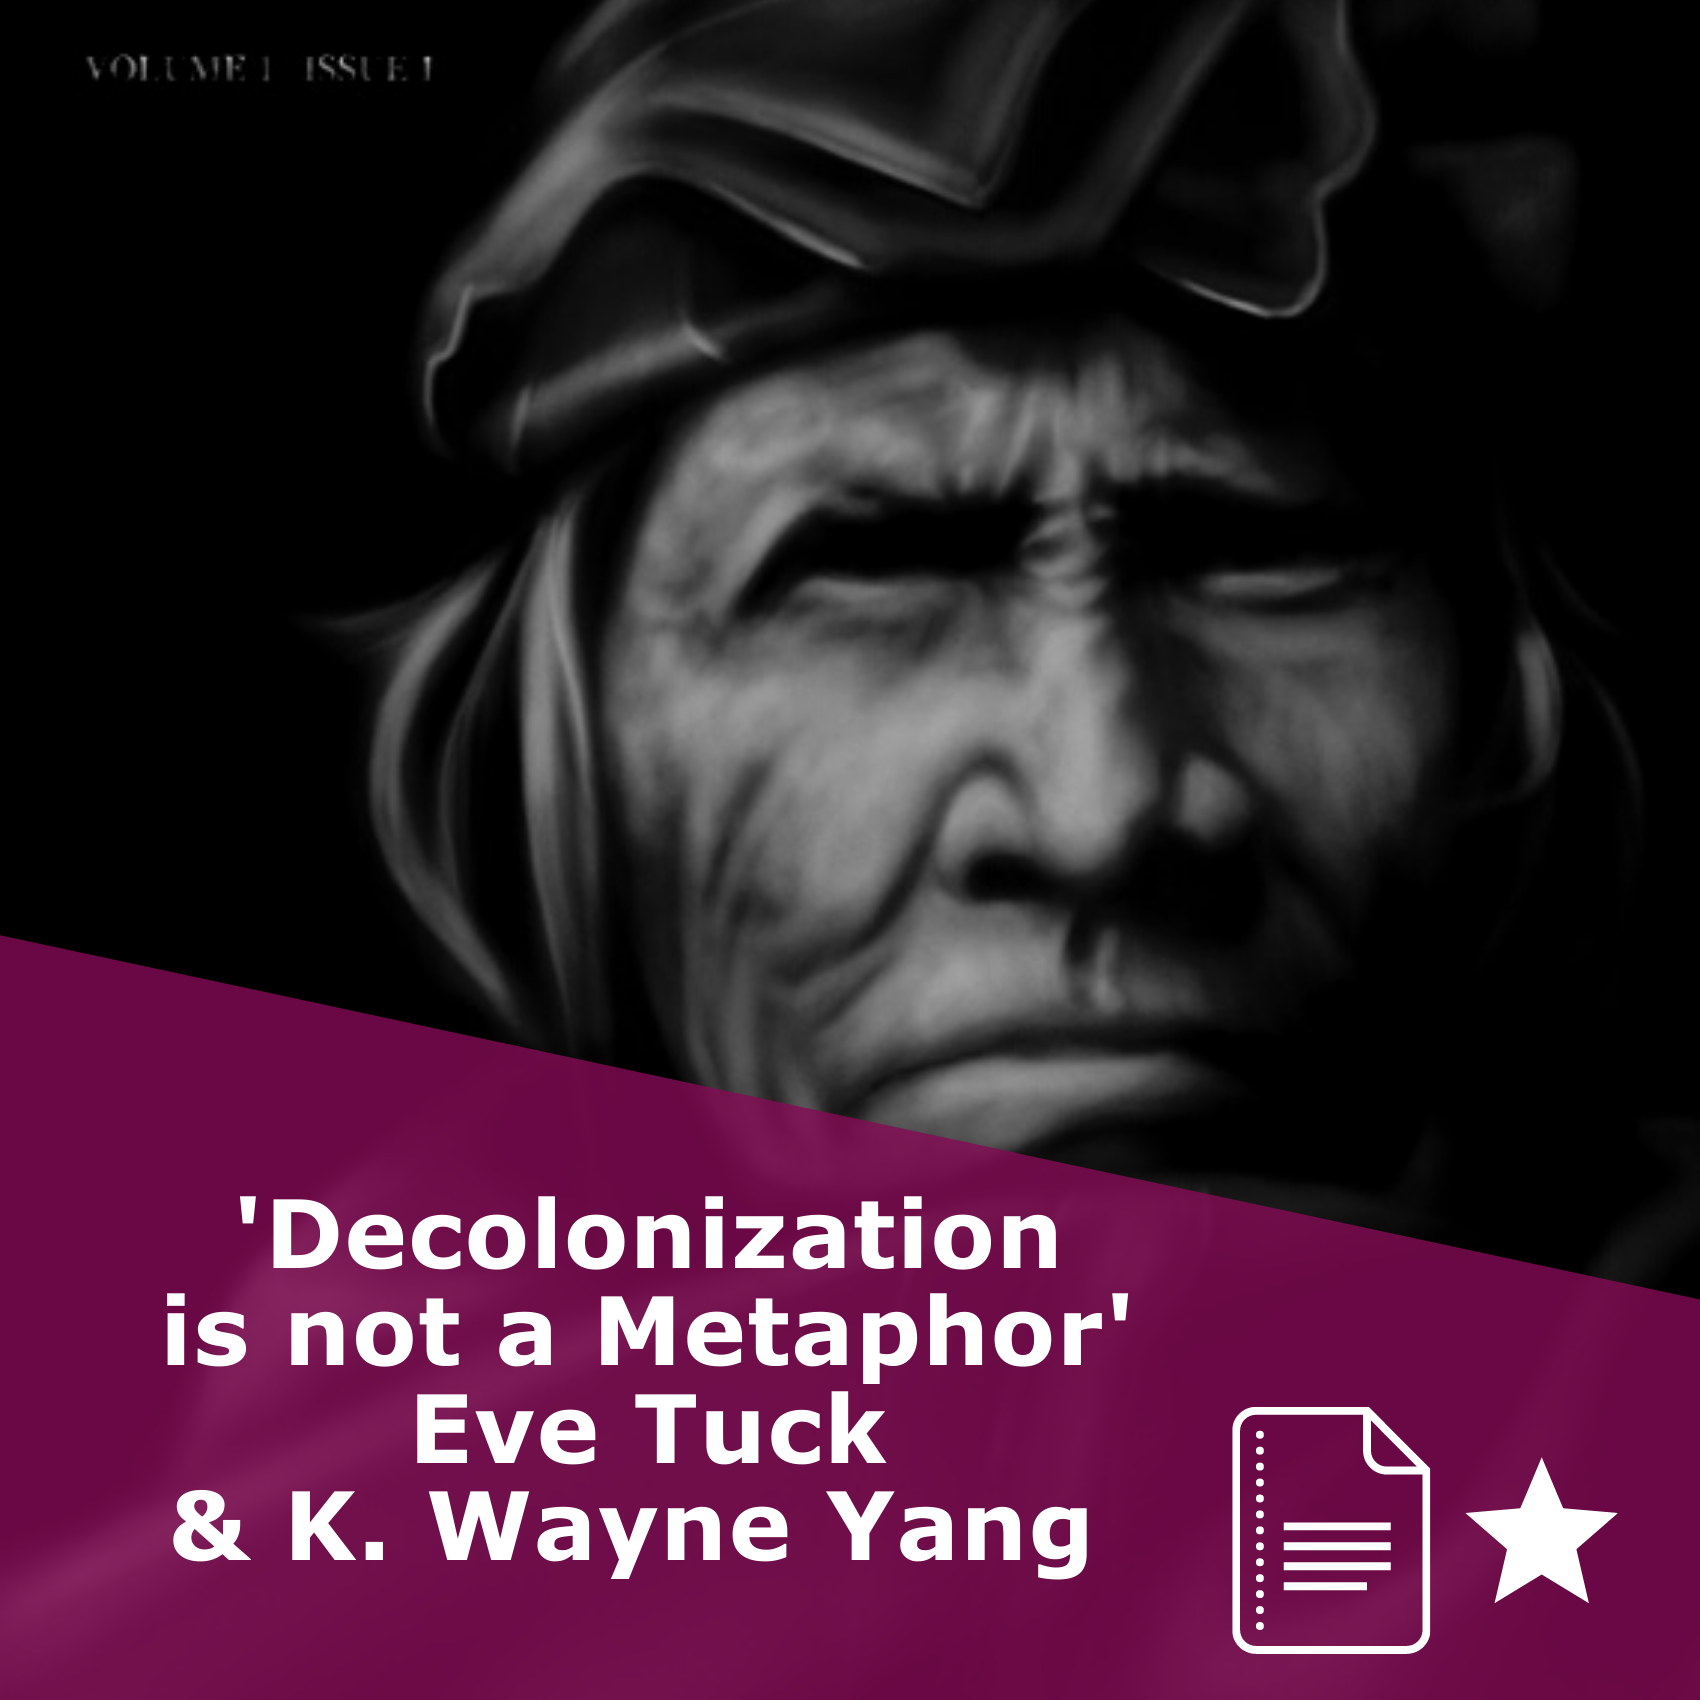 Picture of the cover of 'Decolonization is not a metaphor' in black and white. Written by Eve Tuck and K. Wayne Yang. It is an article, rated one star.